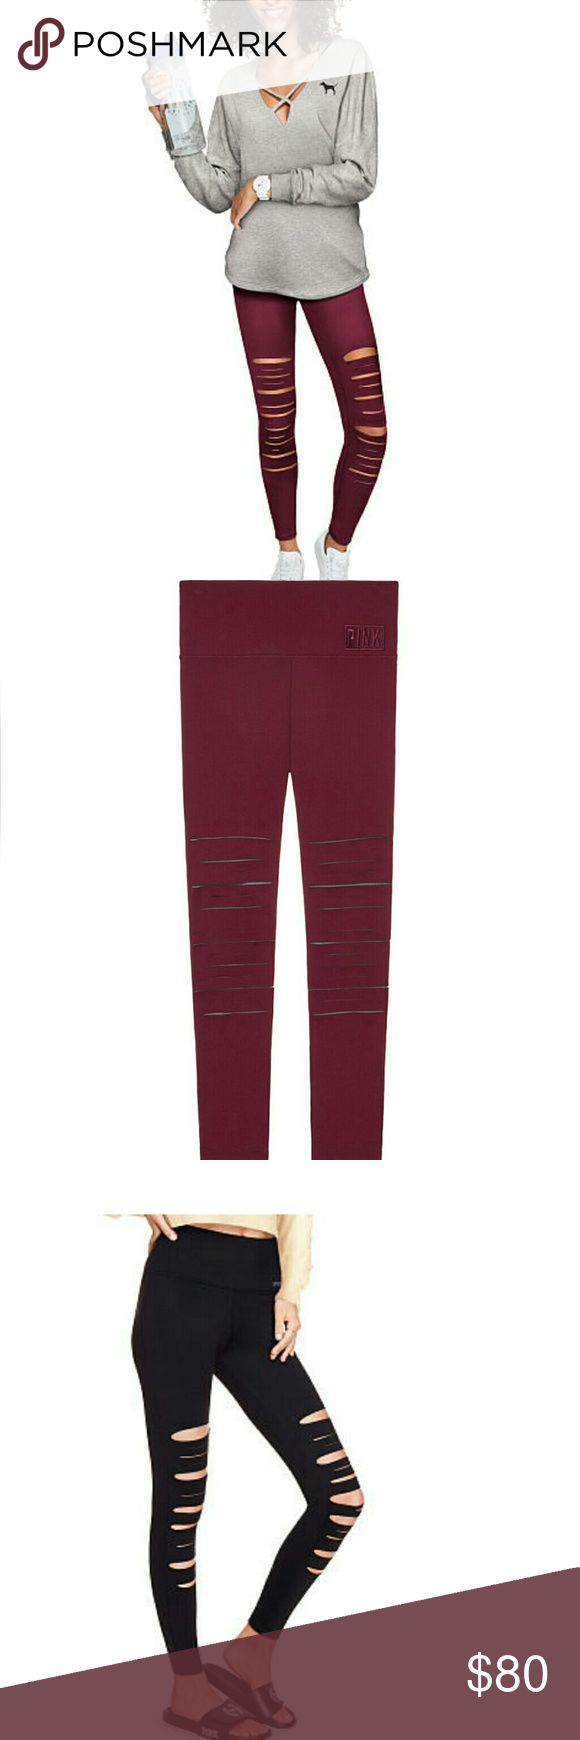 DEEP RUBY ULTIMATE HIGH WAIST FRONT SLASH LEGGING Brand New in Plastic Size Large  Get your street style on point with this cool and trendy Ultimate Legging. Features a high waist, plus quick-dry 4-way stretch that wicks away sweat and is breathable during workouts. Front slash details give all the edge you'll need.  High waist Premium quick-dry 4-way stretch fabric Breathable & sweat-wicking Front slash details Imported nylon/polyester/spandex DK-377-066 PINK Pants Leggings